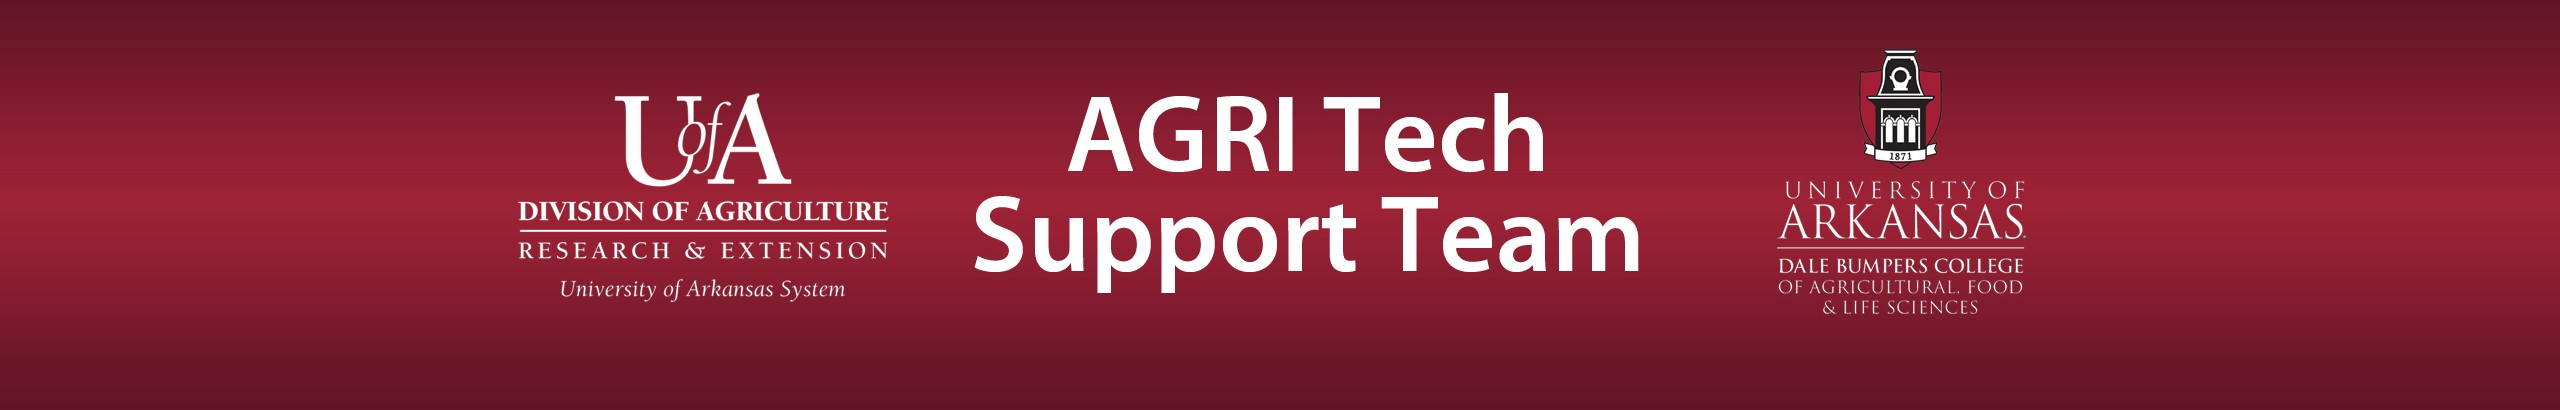 AGRITech: AES AFLS TECHNOLOGY SUPPORT TEAM